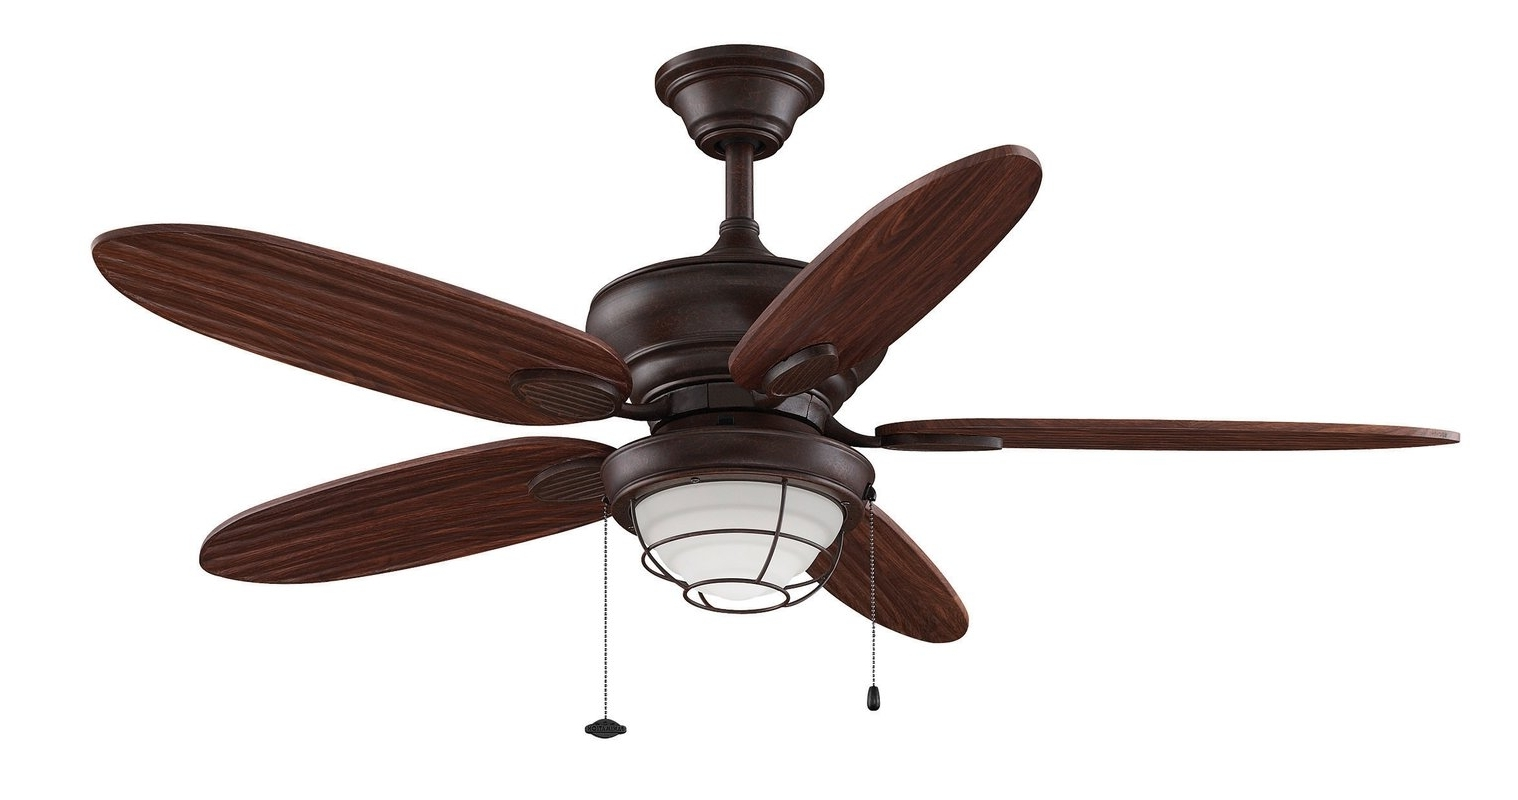 Outdoor Ceiling Fans C Wayfair Ceiling Fans With Lights Simple Intended For Most Current Wayfair Outdoor Ceiling Fans With Lights (View 7 of 20)